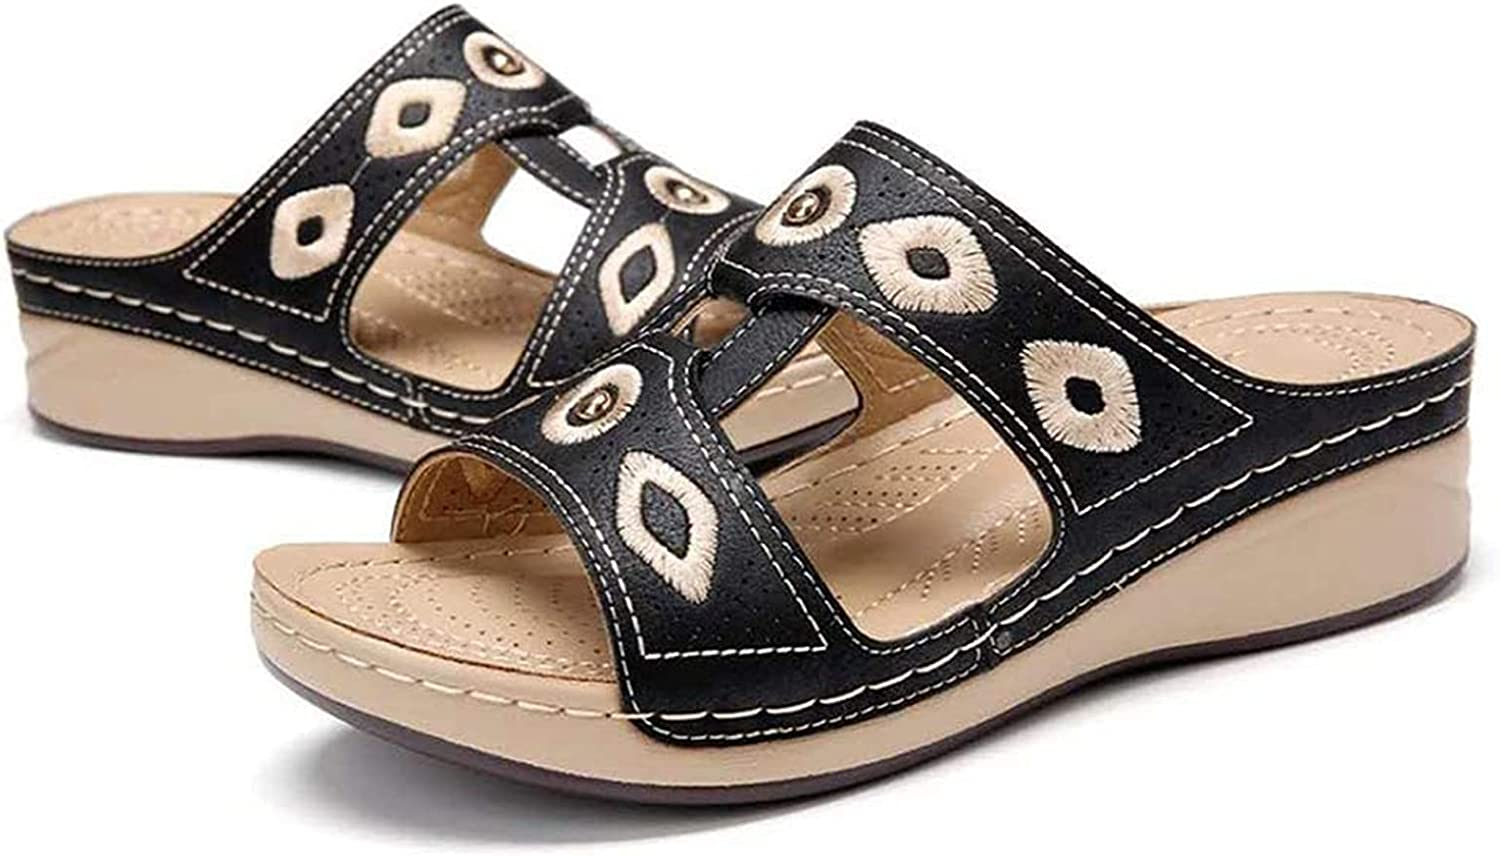 CHLDDHC Summer Jacksonville Quantity limited Mall Hollow Embroidered Sandals Women's Platform Wedge